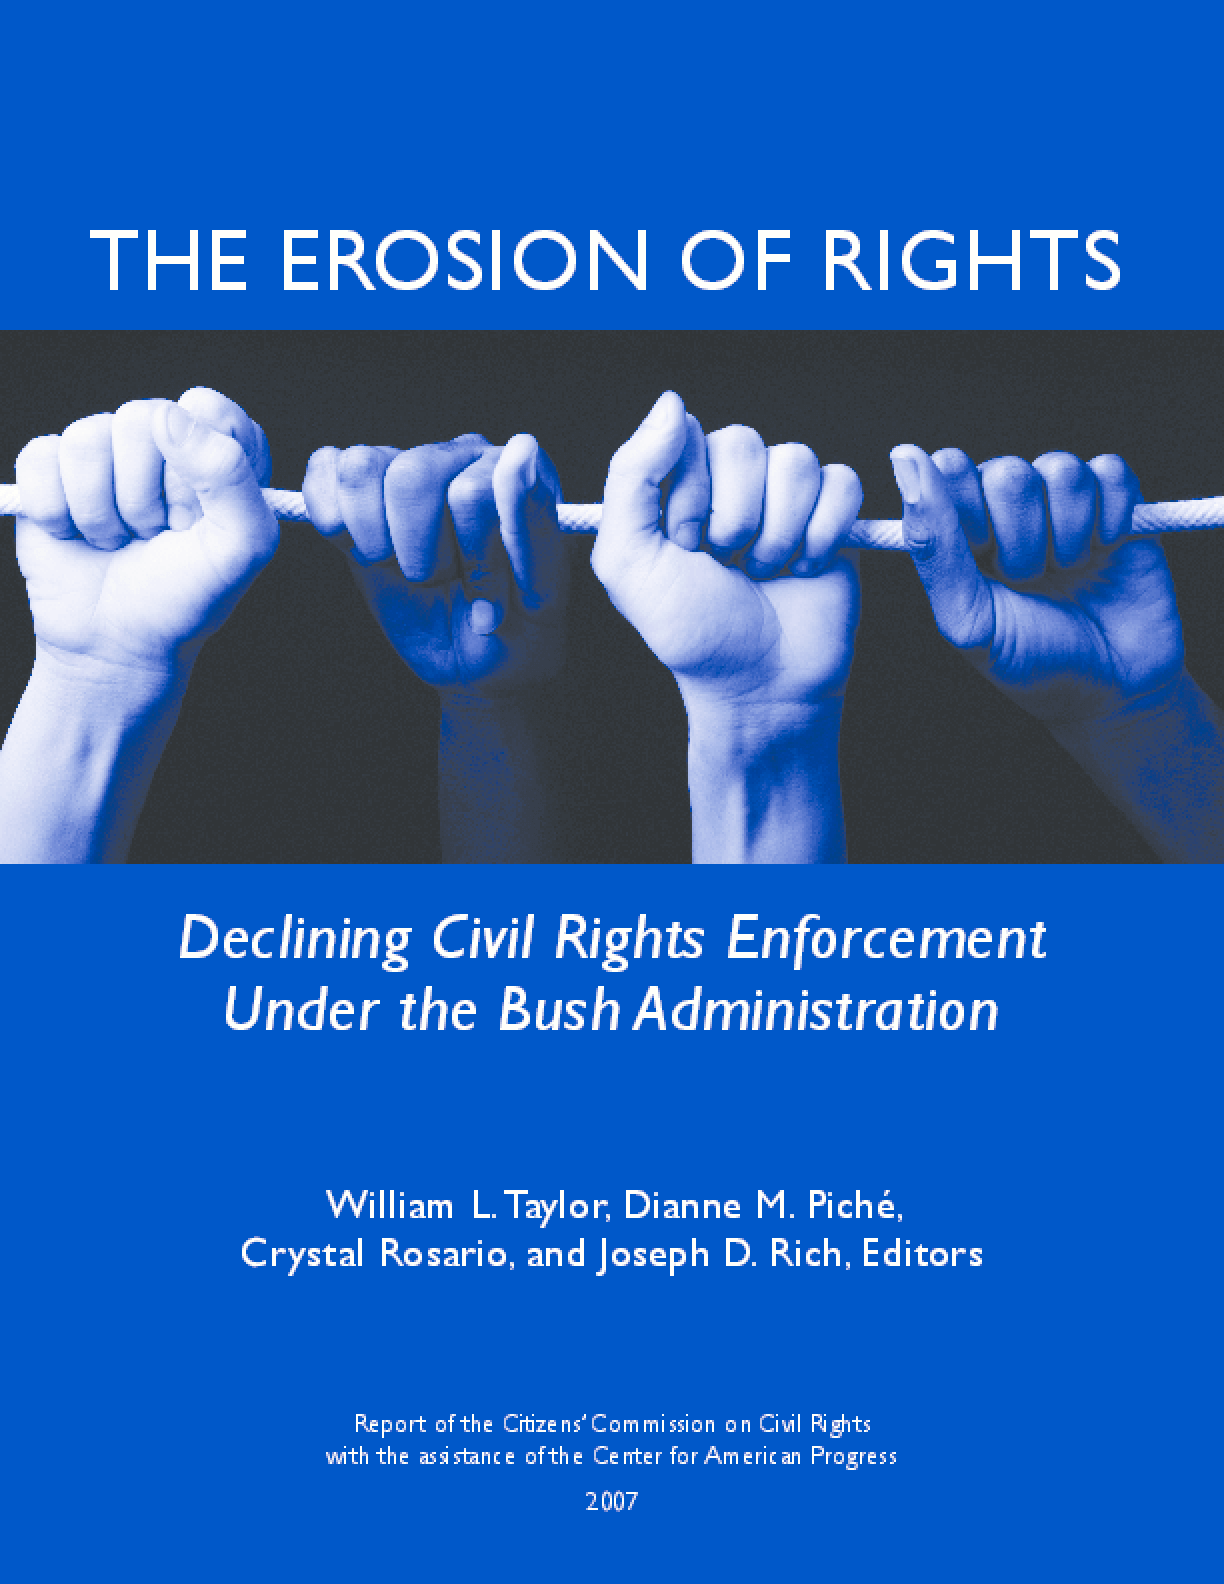 The Erosion of Rights: Declining Civil Rights Enforcement Under the Bush Administration